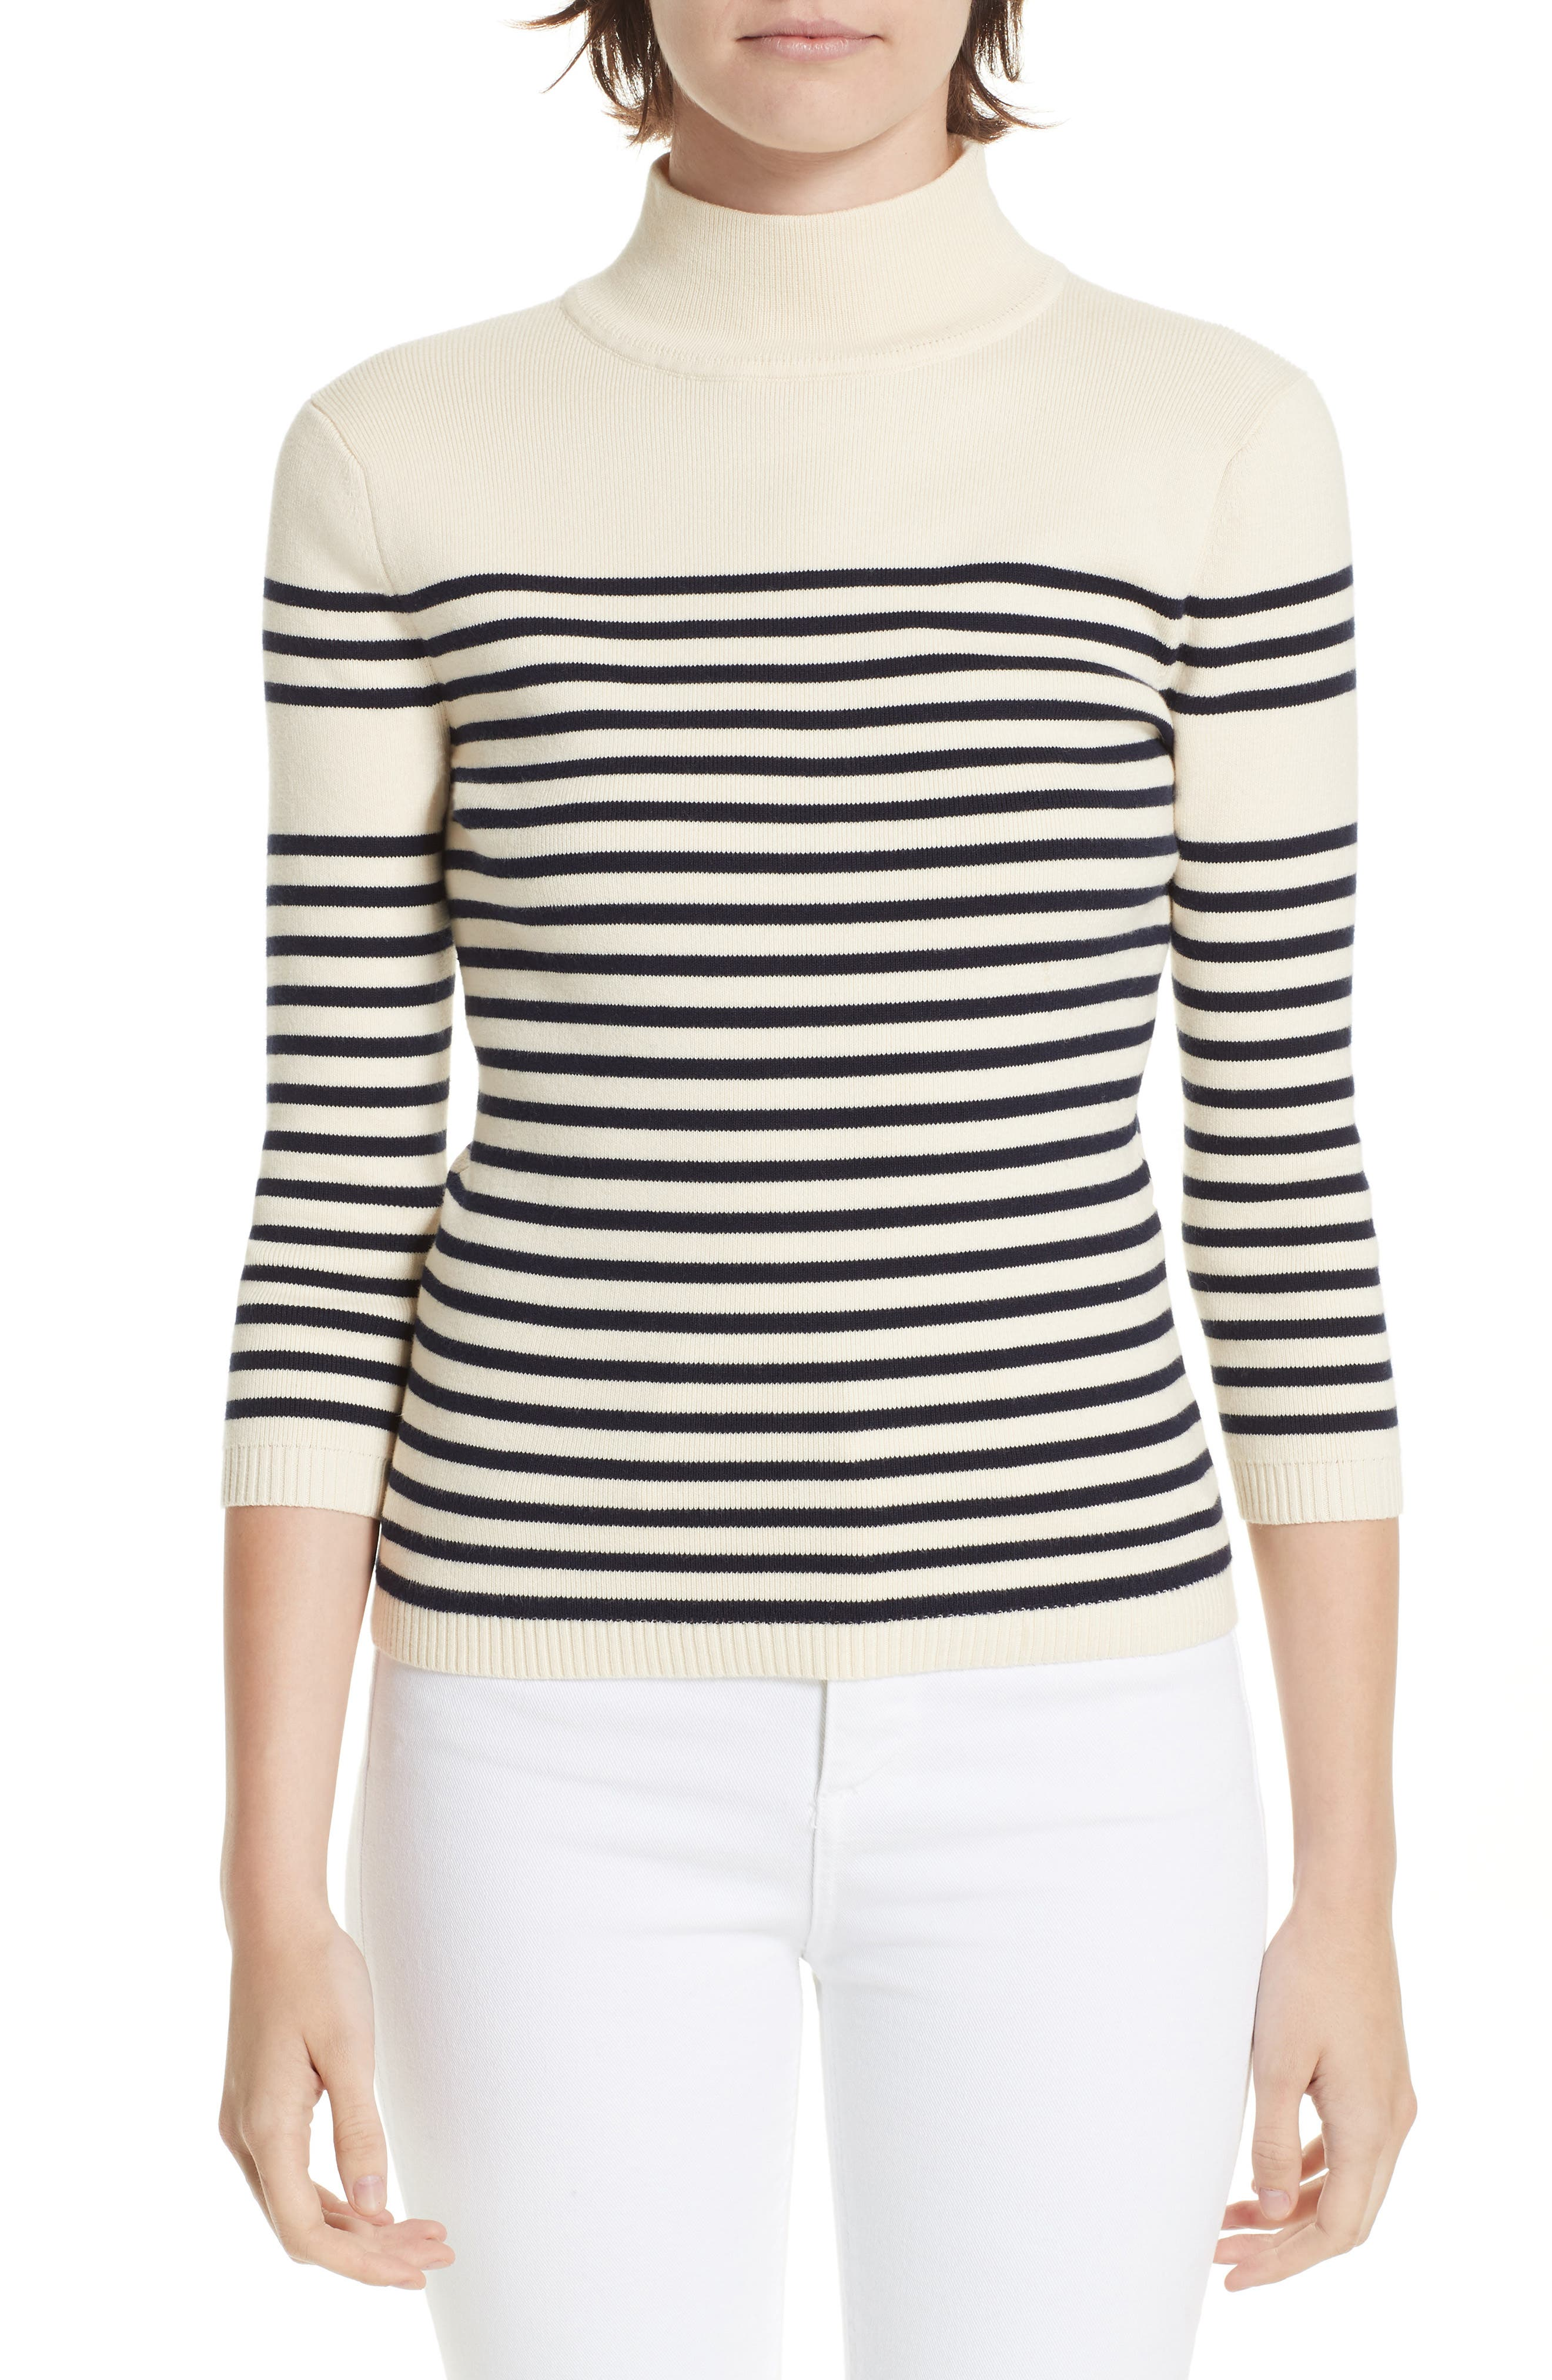 Classique Stripe Sweater,                             Main thumbnail 1, color,                             CREAM/ NAVY STRIPES